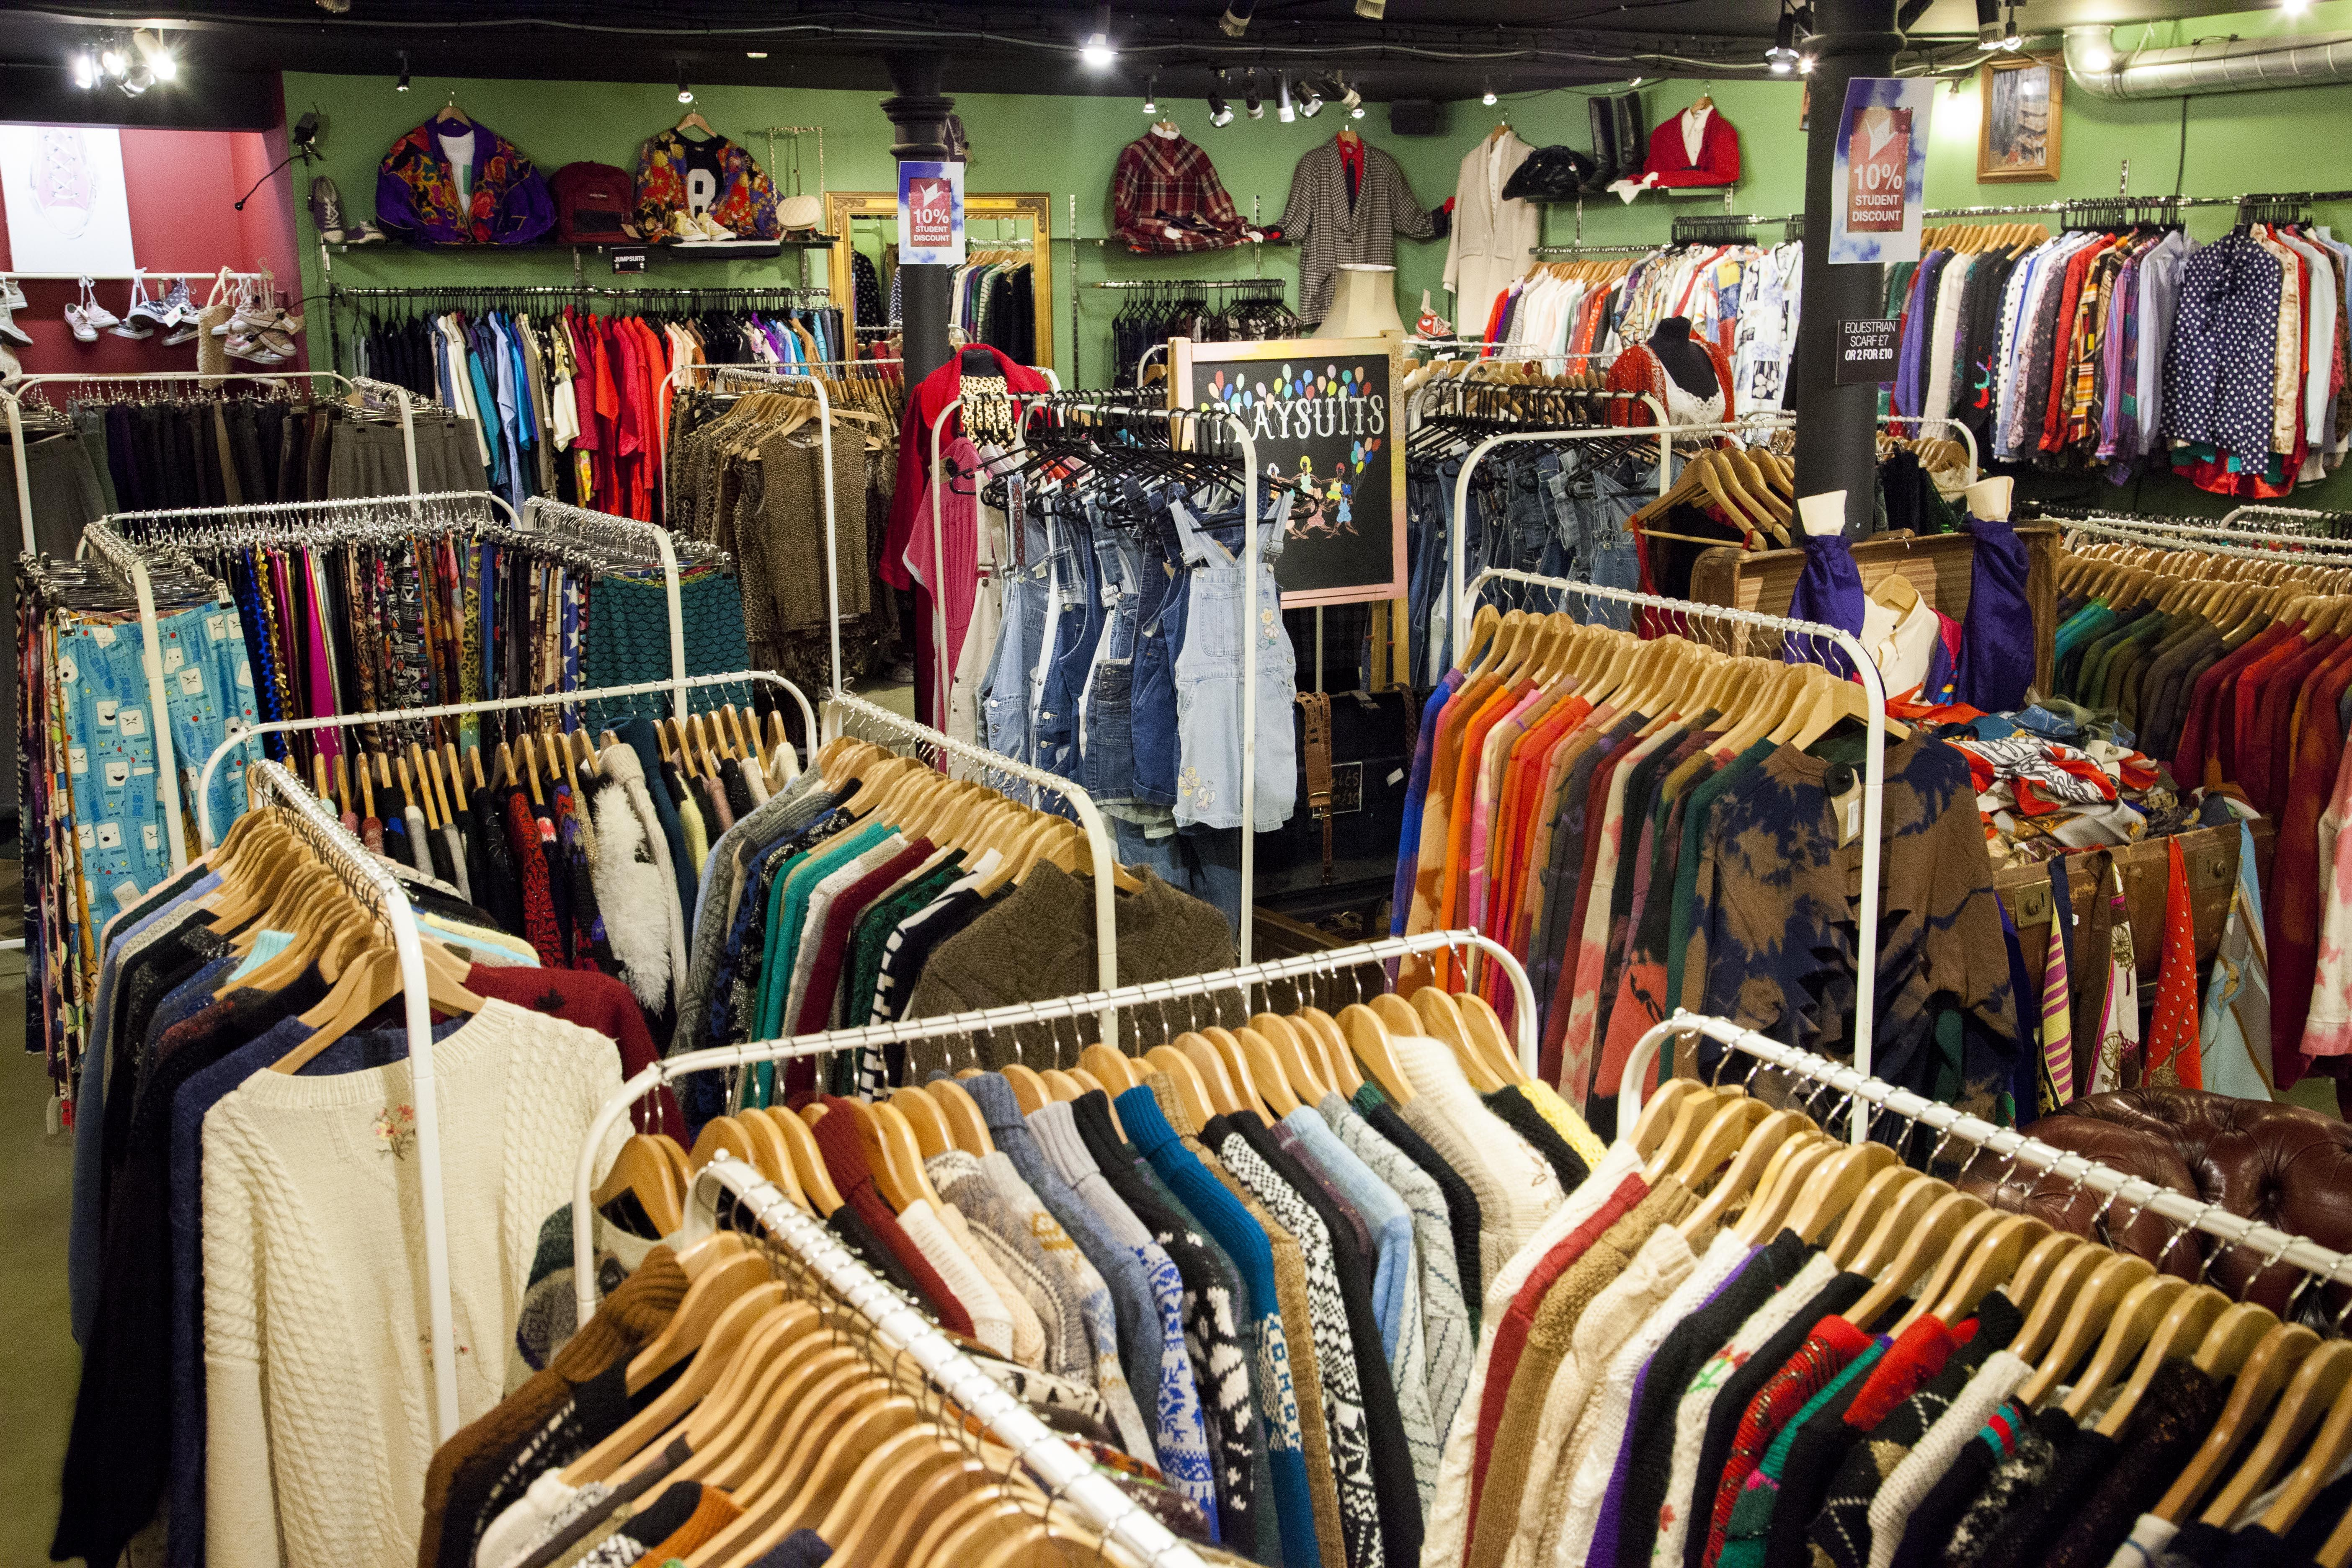 Travel Hotels Vacation Spots Reviews And Tips London Shopping Vintage Clothes Shop Vintage London